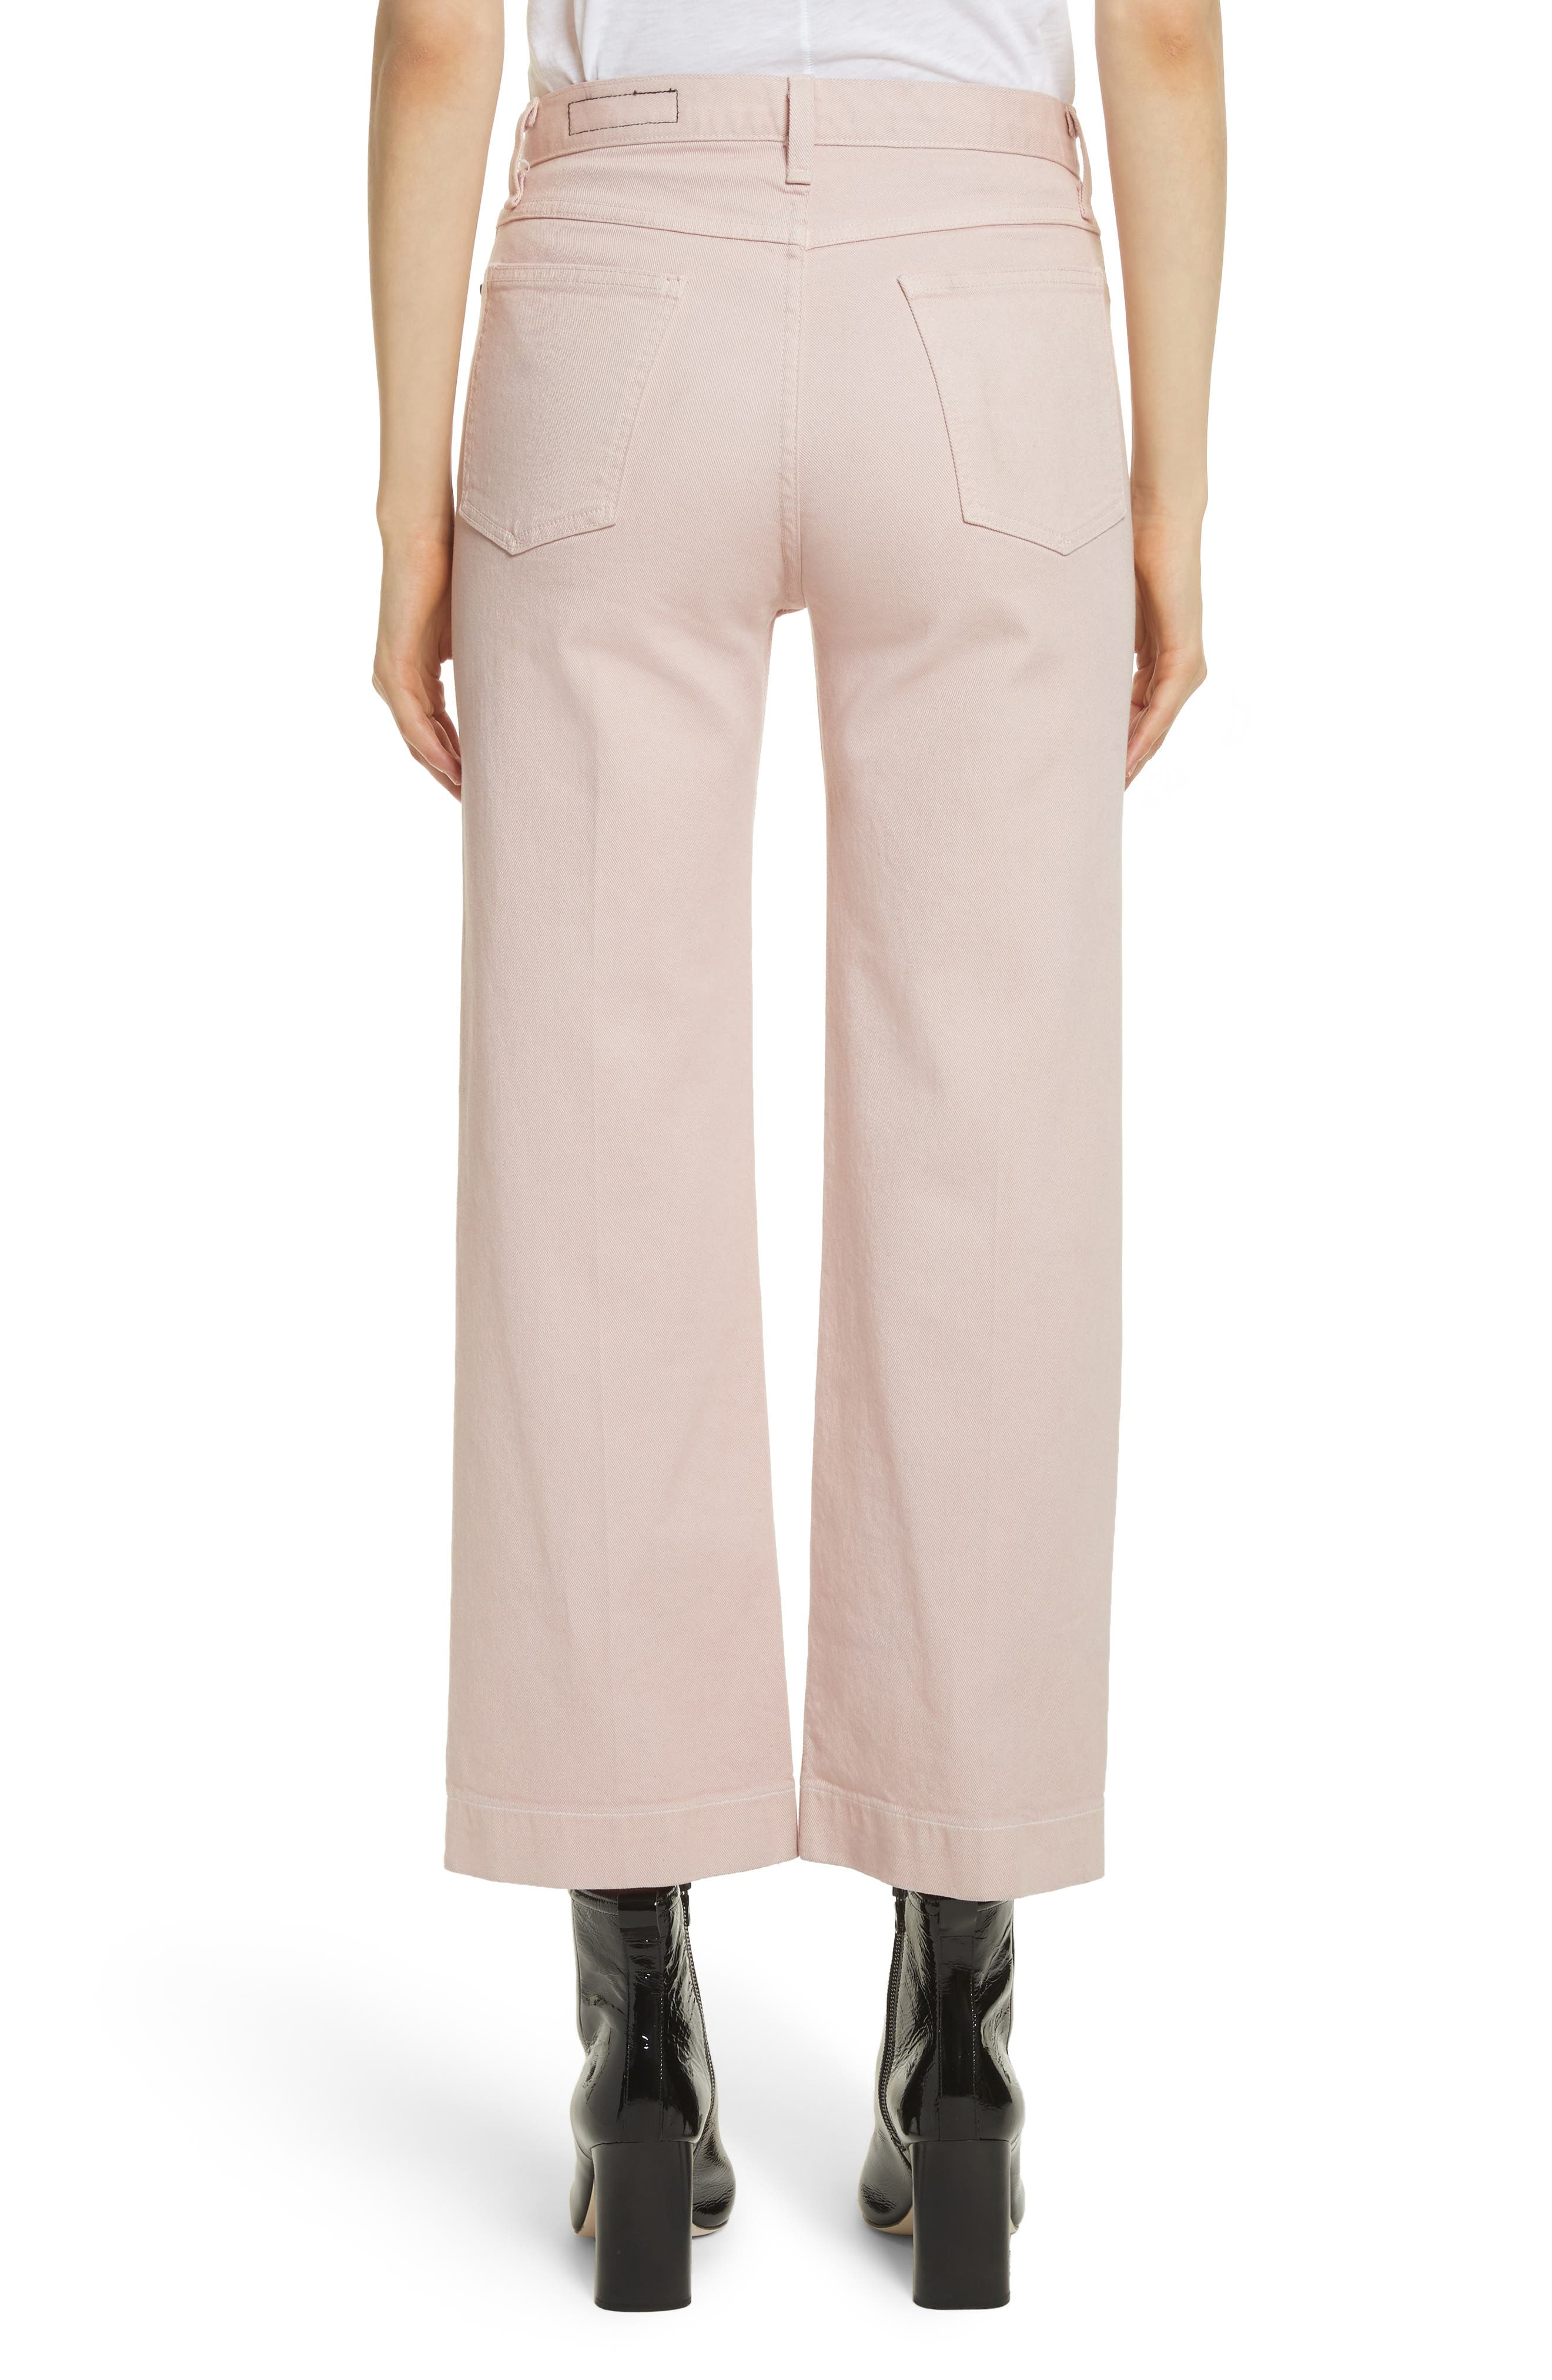 Justine High Waist Trouser Jeans,                             Alternate thumbnail 2, color,                             Blush Twill